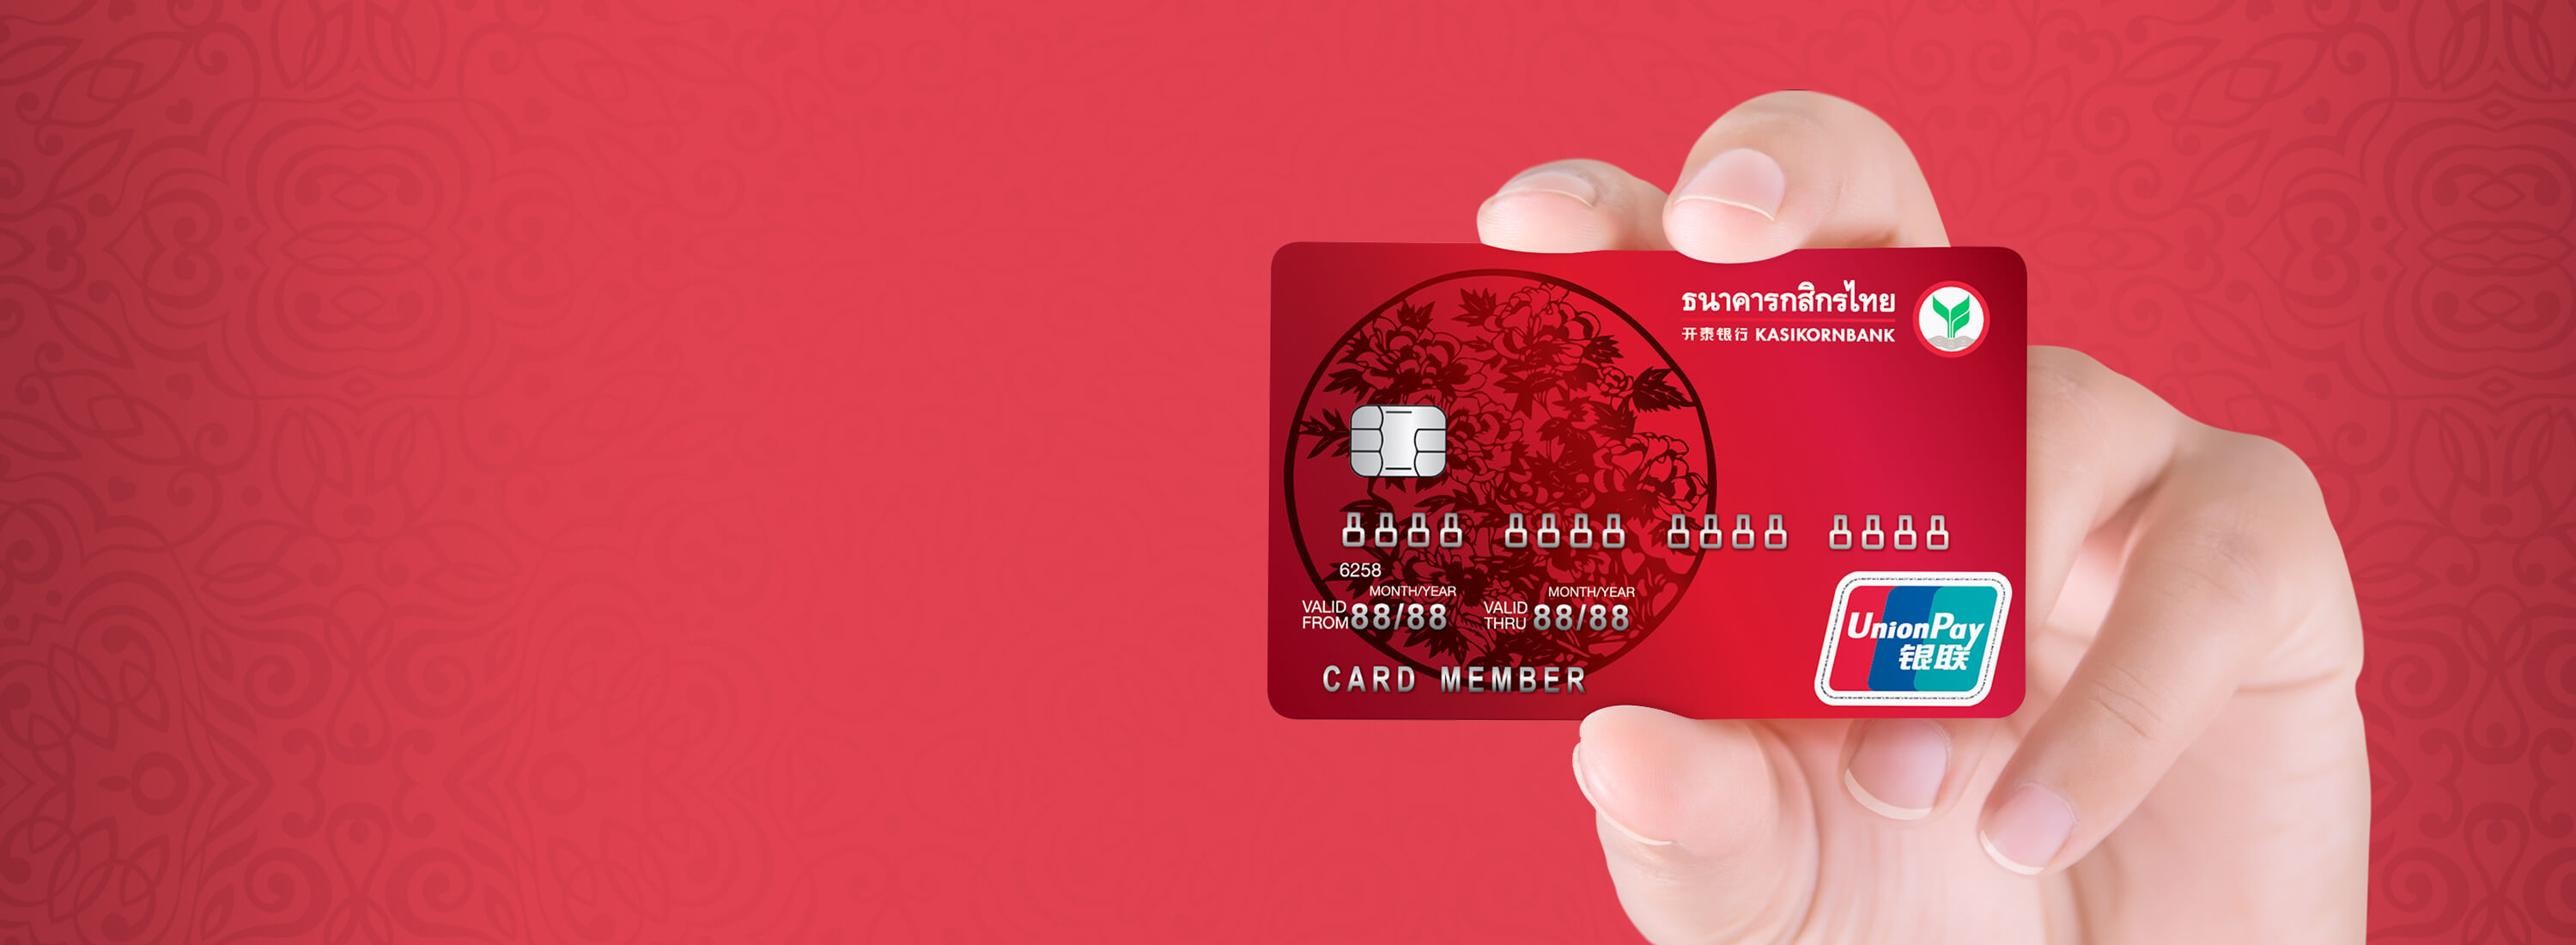 monthly housing payment credit card application